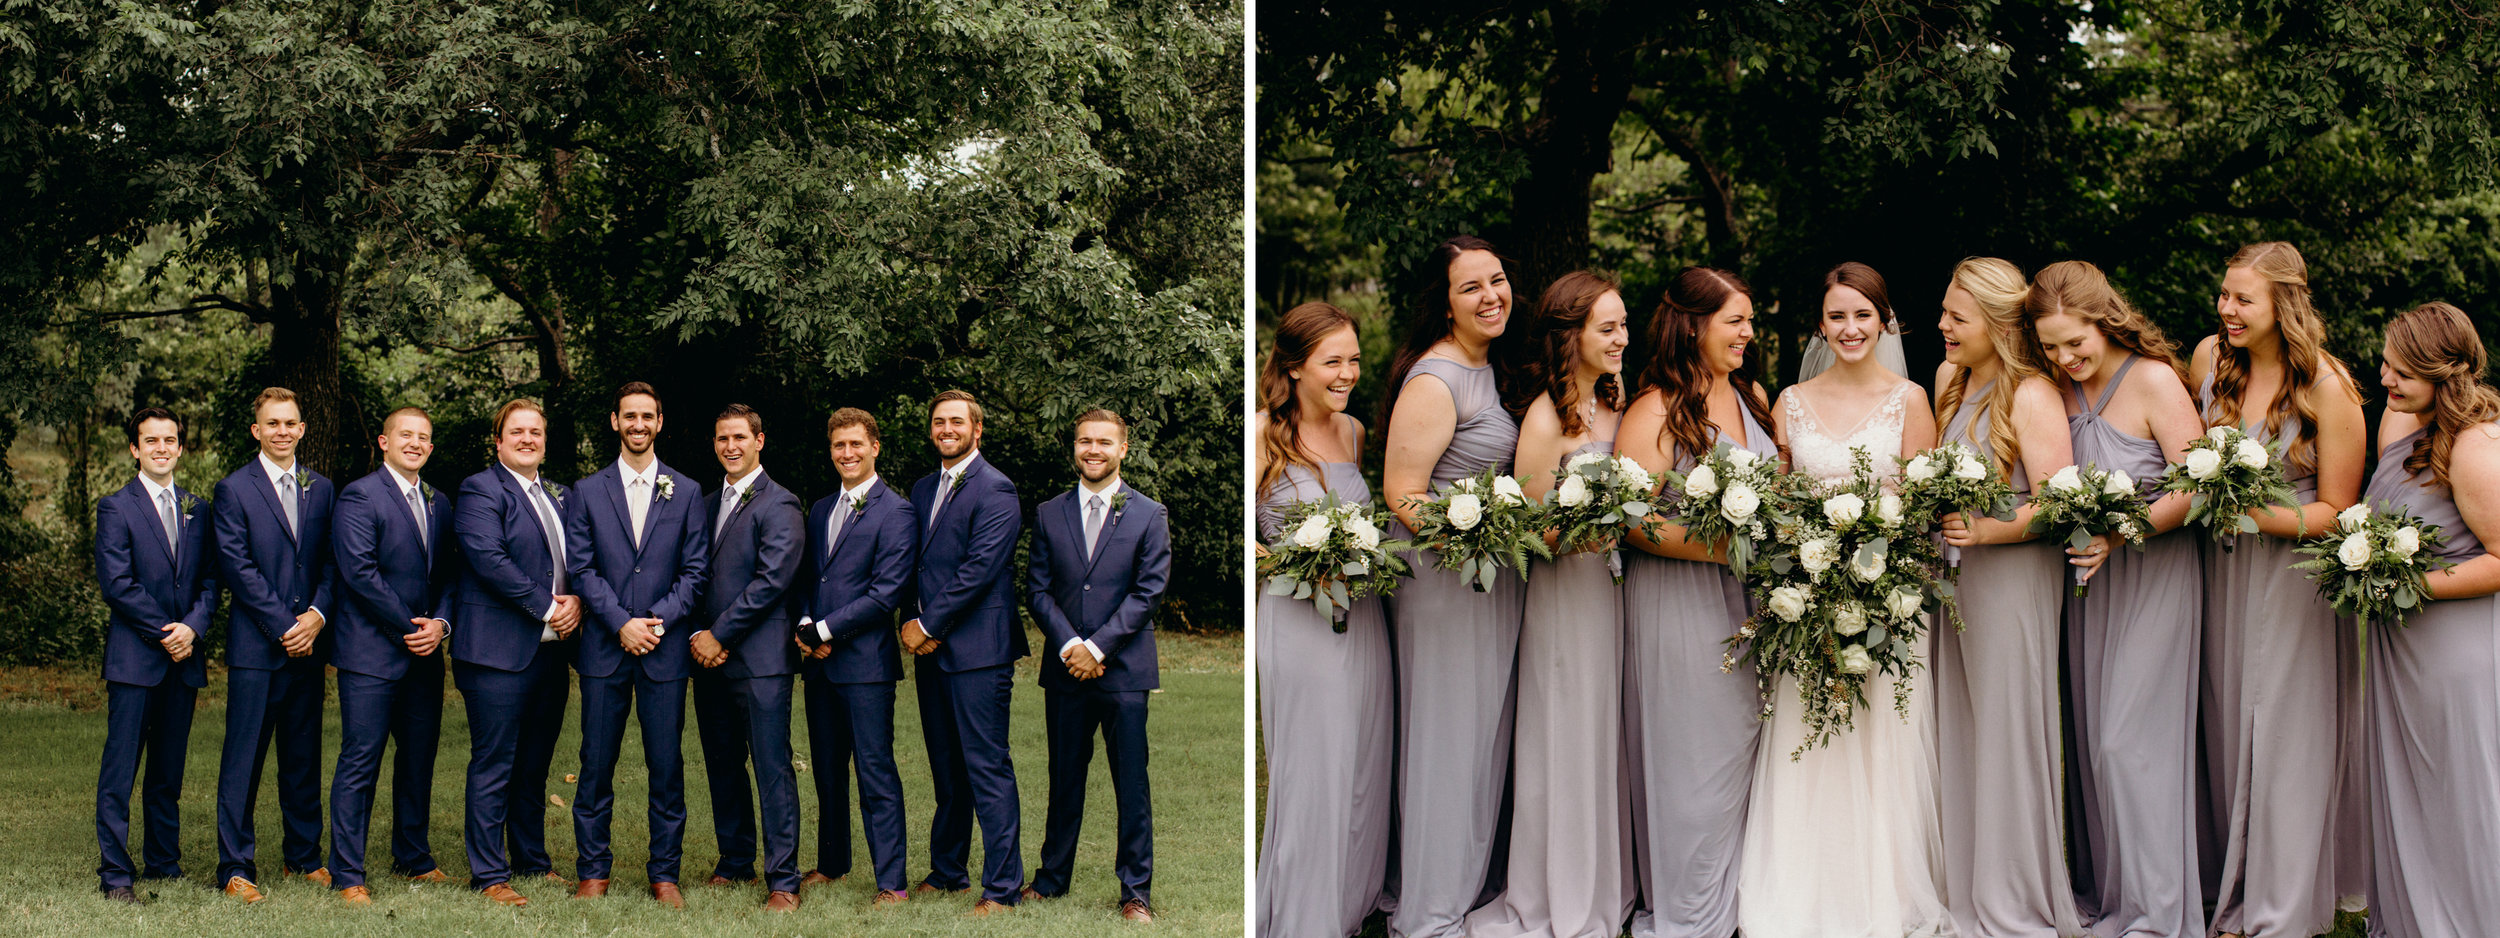 kailey bridal party.jpg